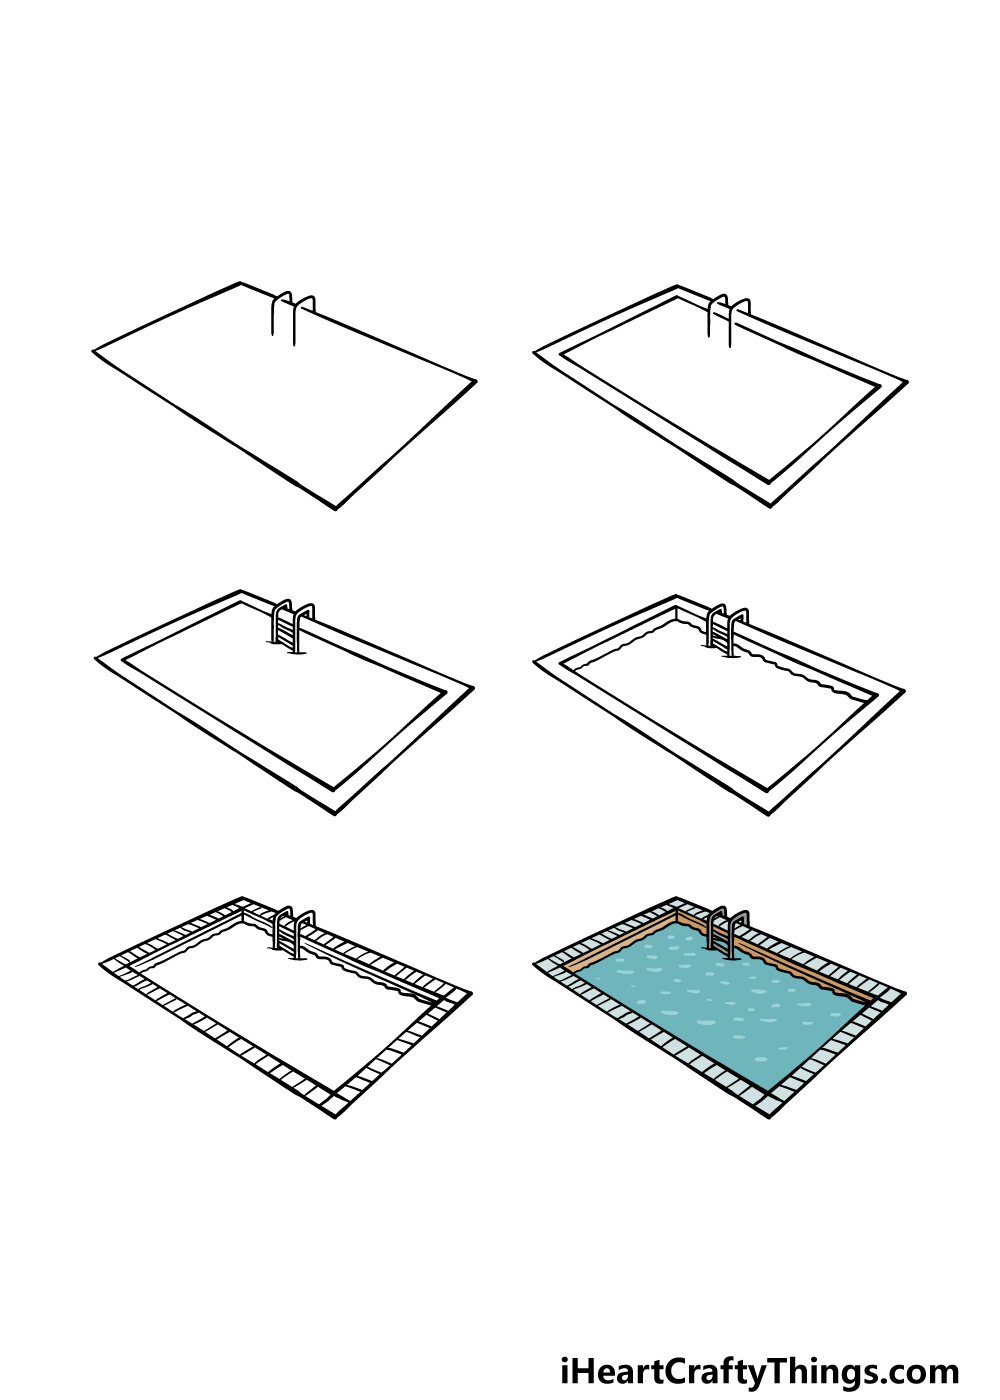 how to draw a pool in 6 steps